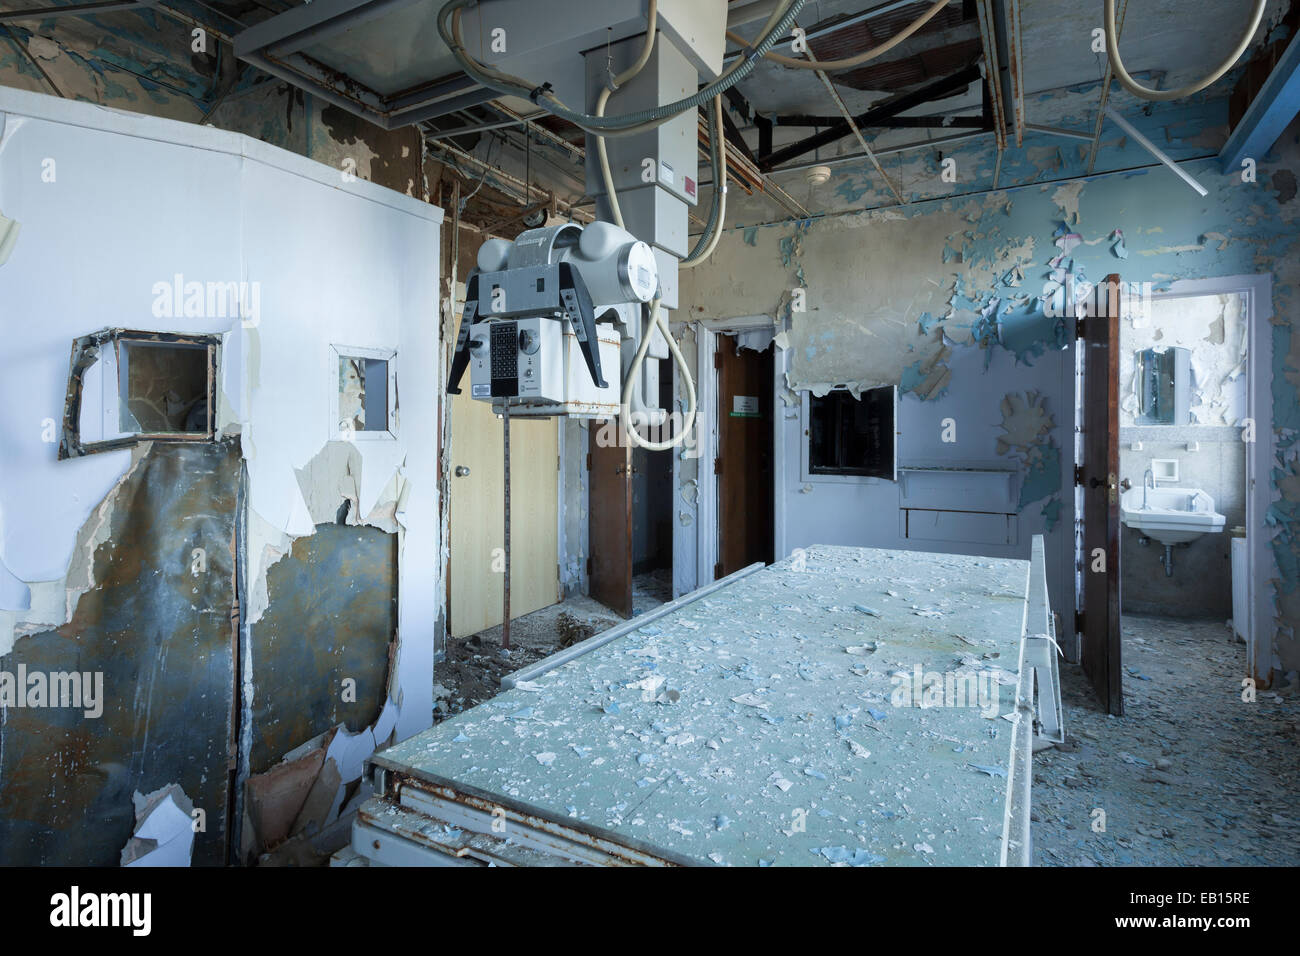 A Radiology room table, an X-ray generator and an exposed lead wall in an abandoned hospital. Ontario, Canada. - Stock Image